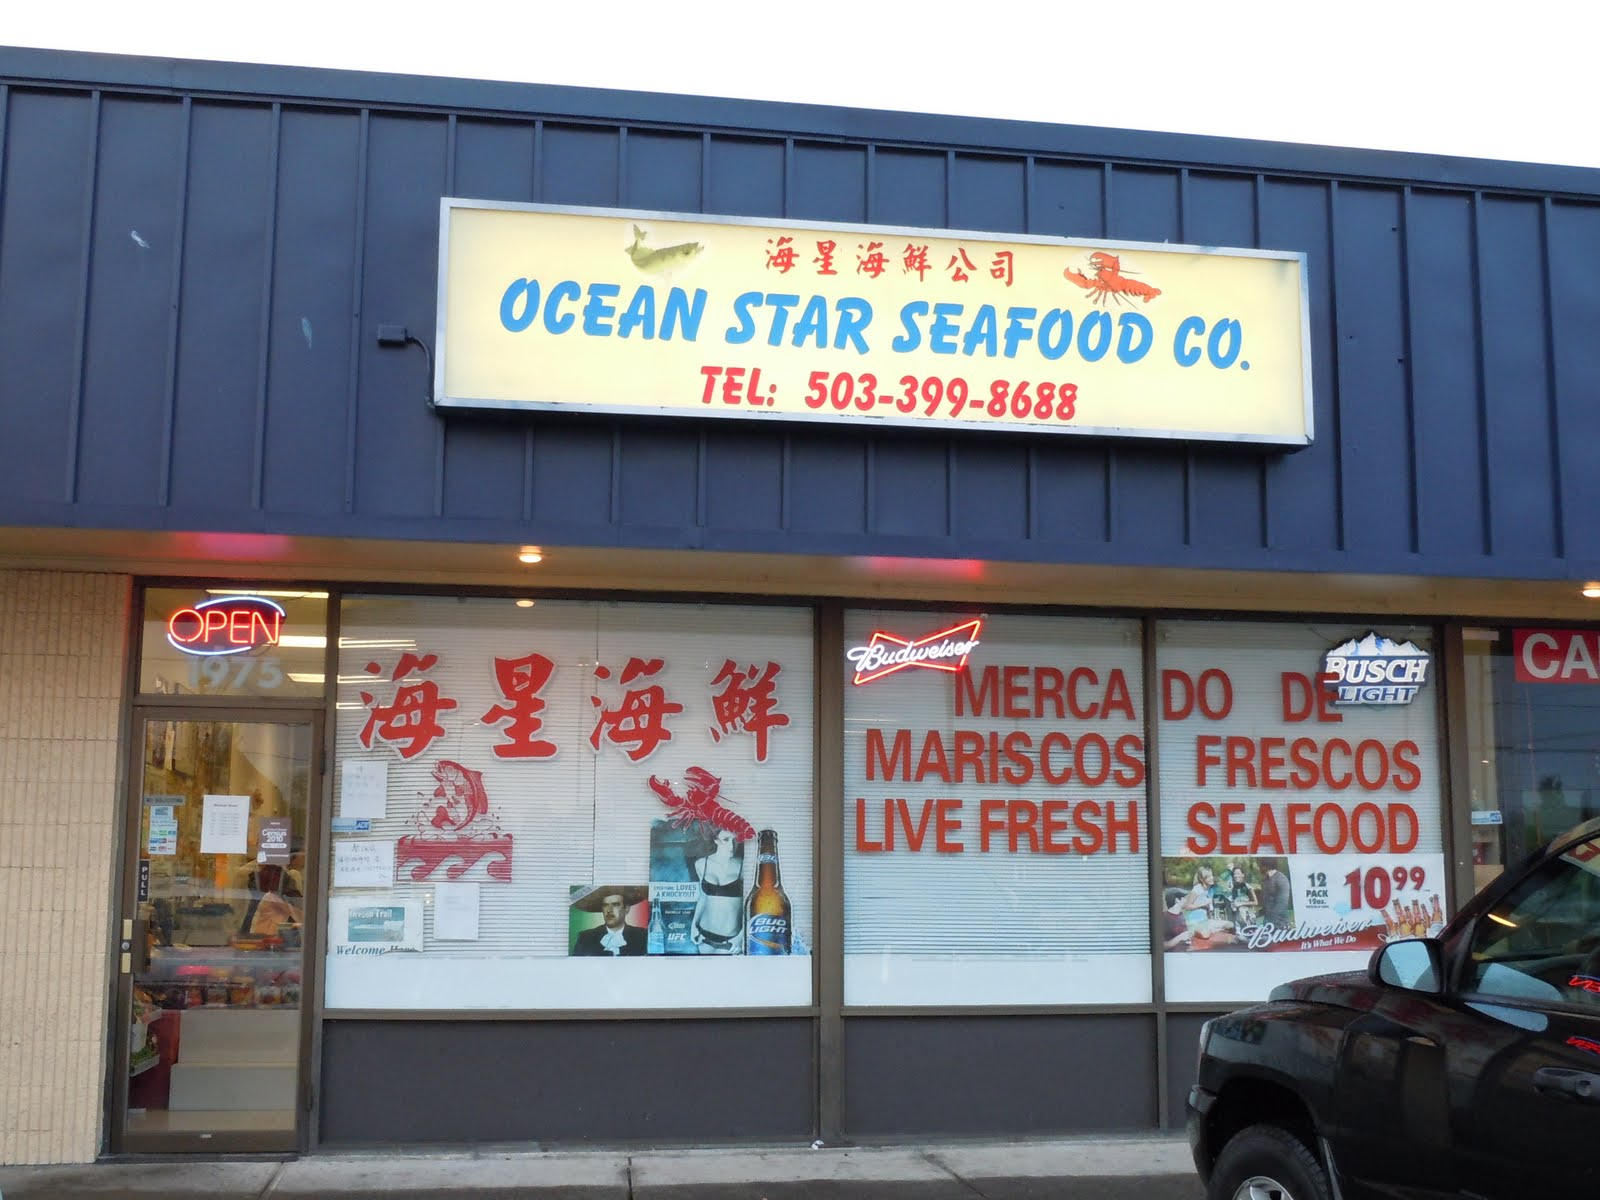 Just go to Ocean Star Seafood Co. in Salem. It is located on Lancaster Dr. ...